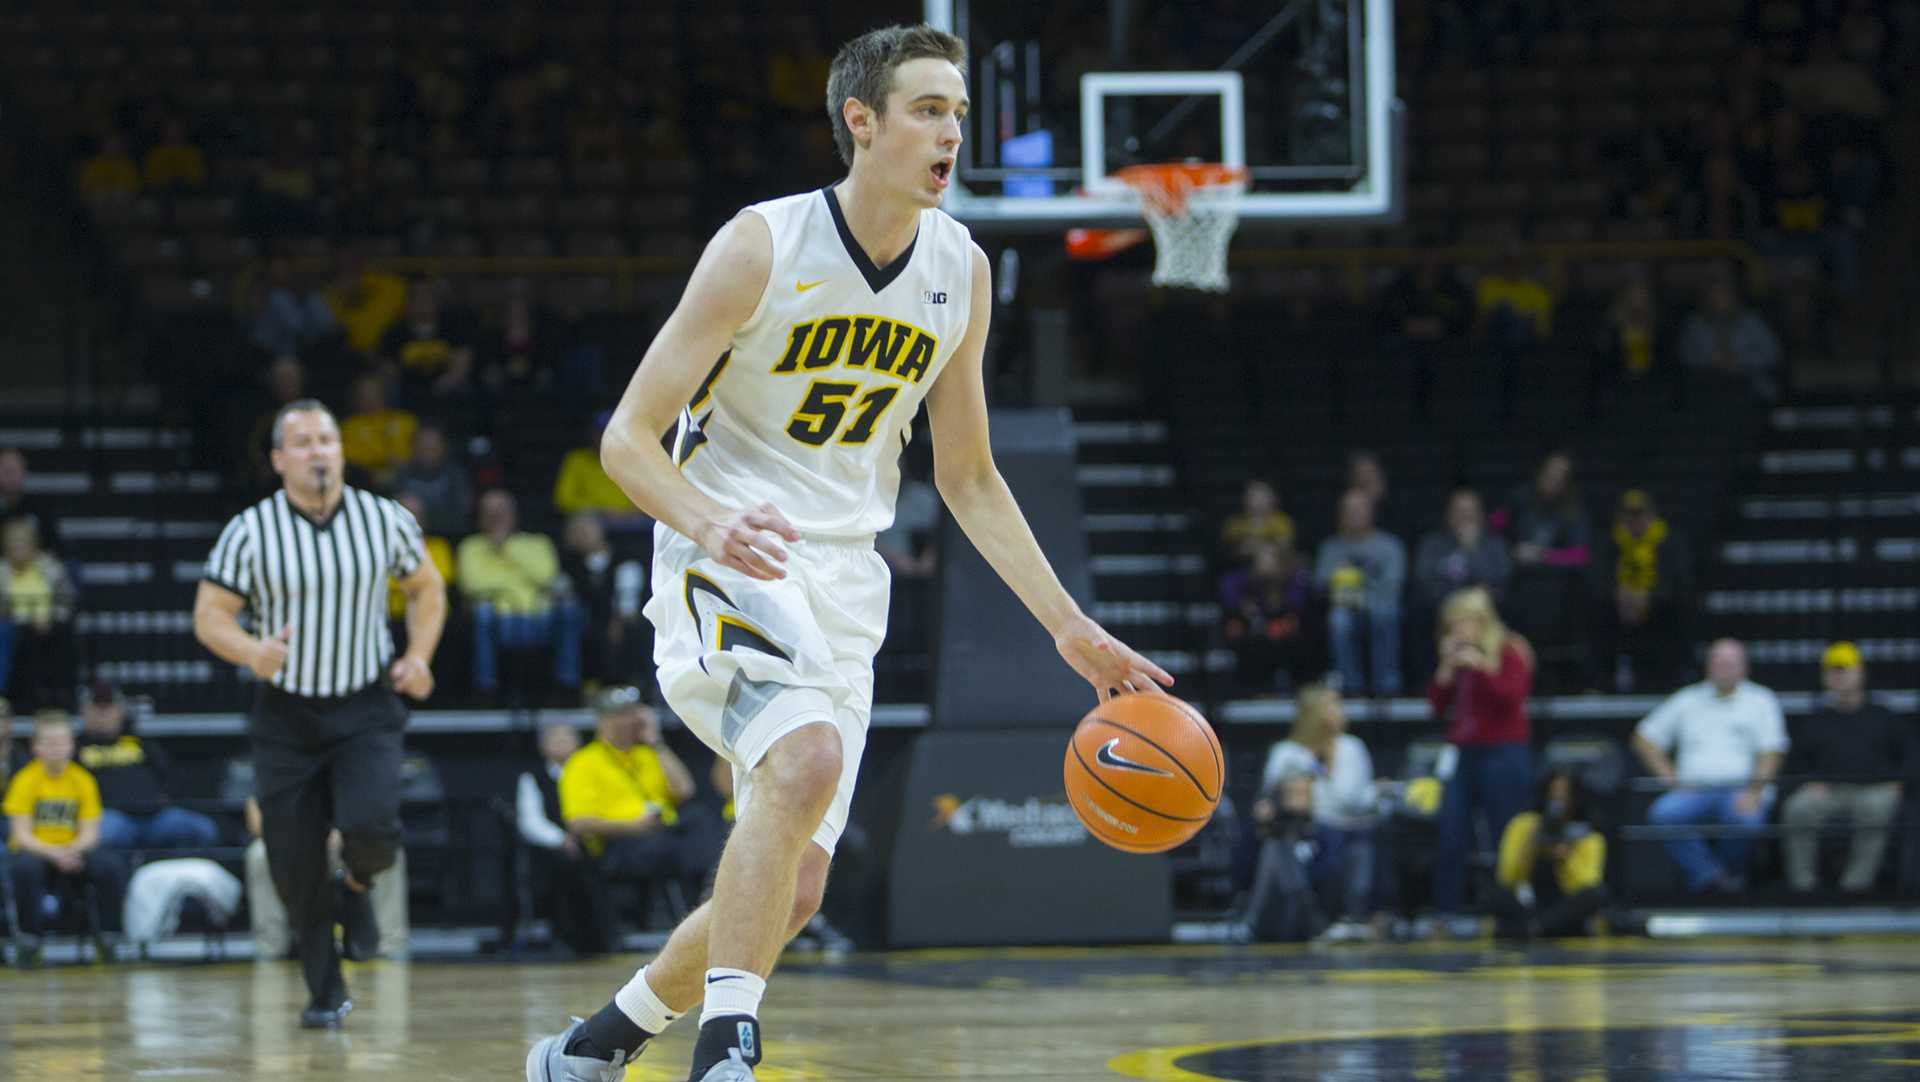 Iowa forward Nicholas Baer dribbles the ball during the Iowa/Belmont Abbey basketball game in Carver-Hawkeye Arena on Thursday, Nov. 2, 2017. The Hawkeyes defeated the Crusaders, 96-64. (Lily Smith/The Daily Iowan)